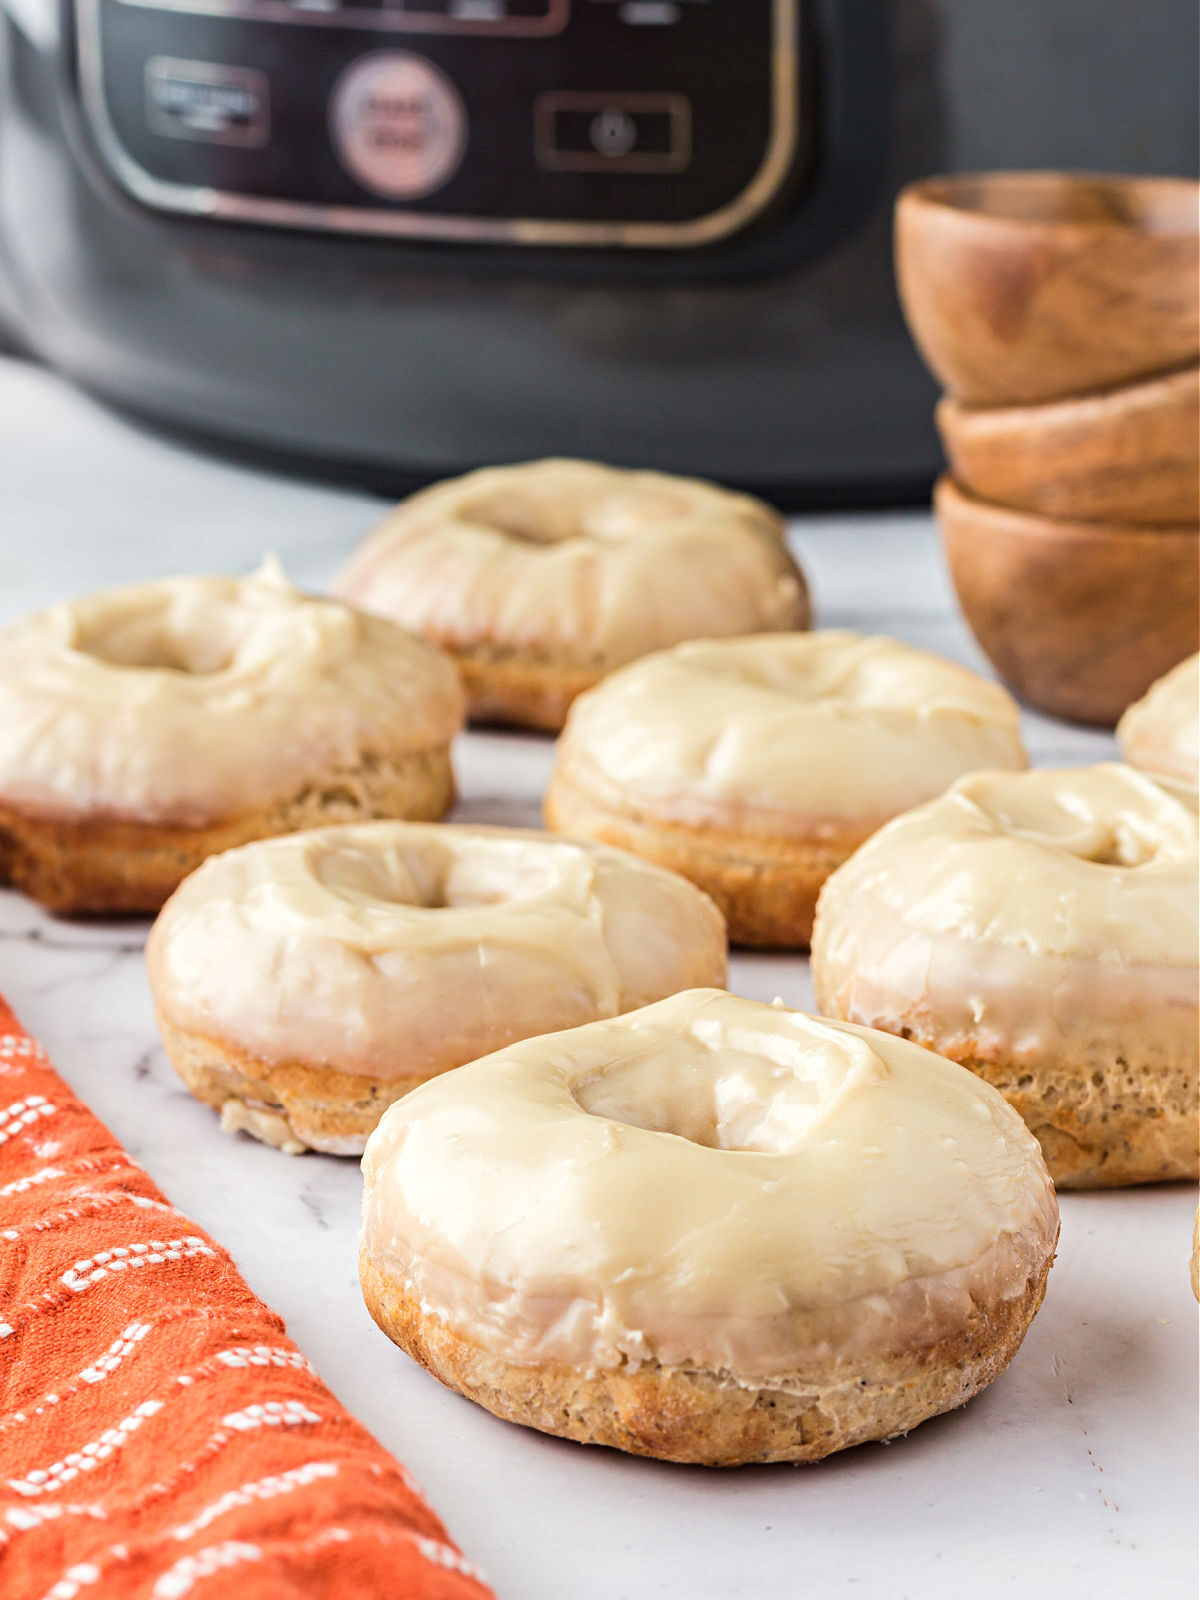 Glazed maple doughnuts in front of an air fryer.